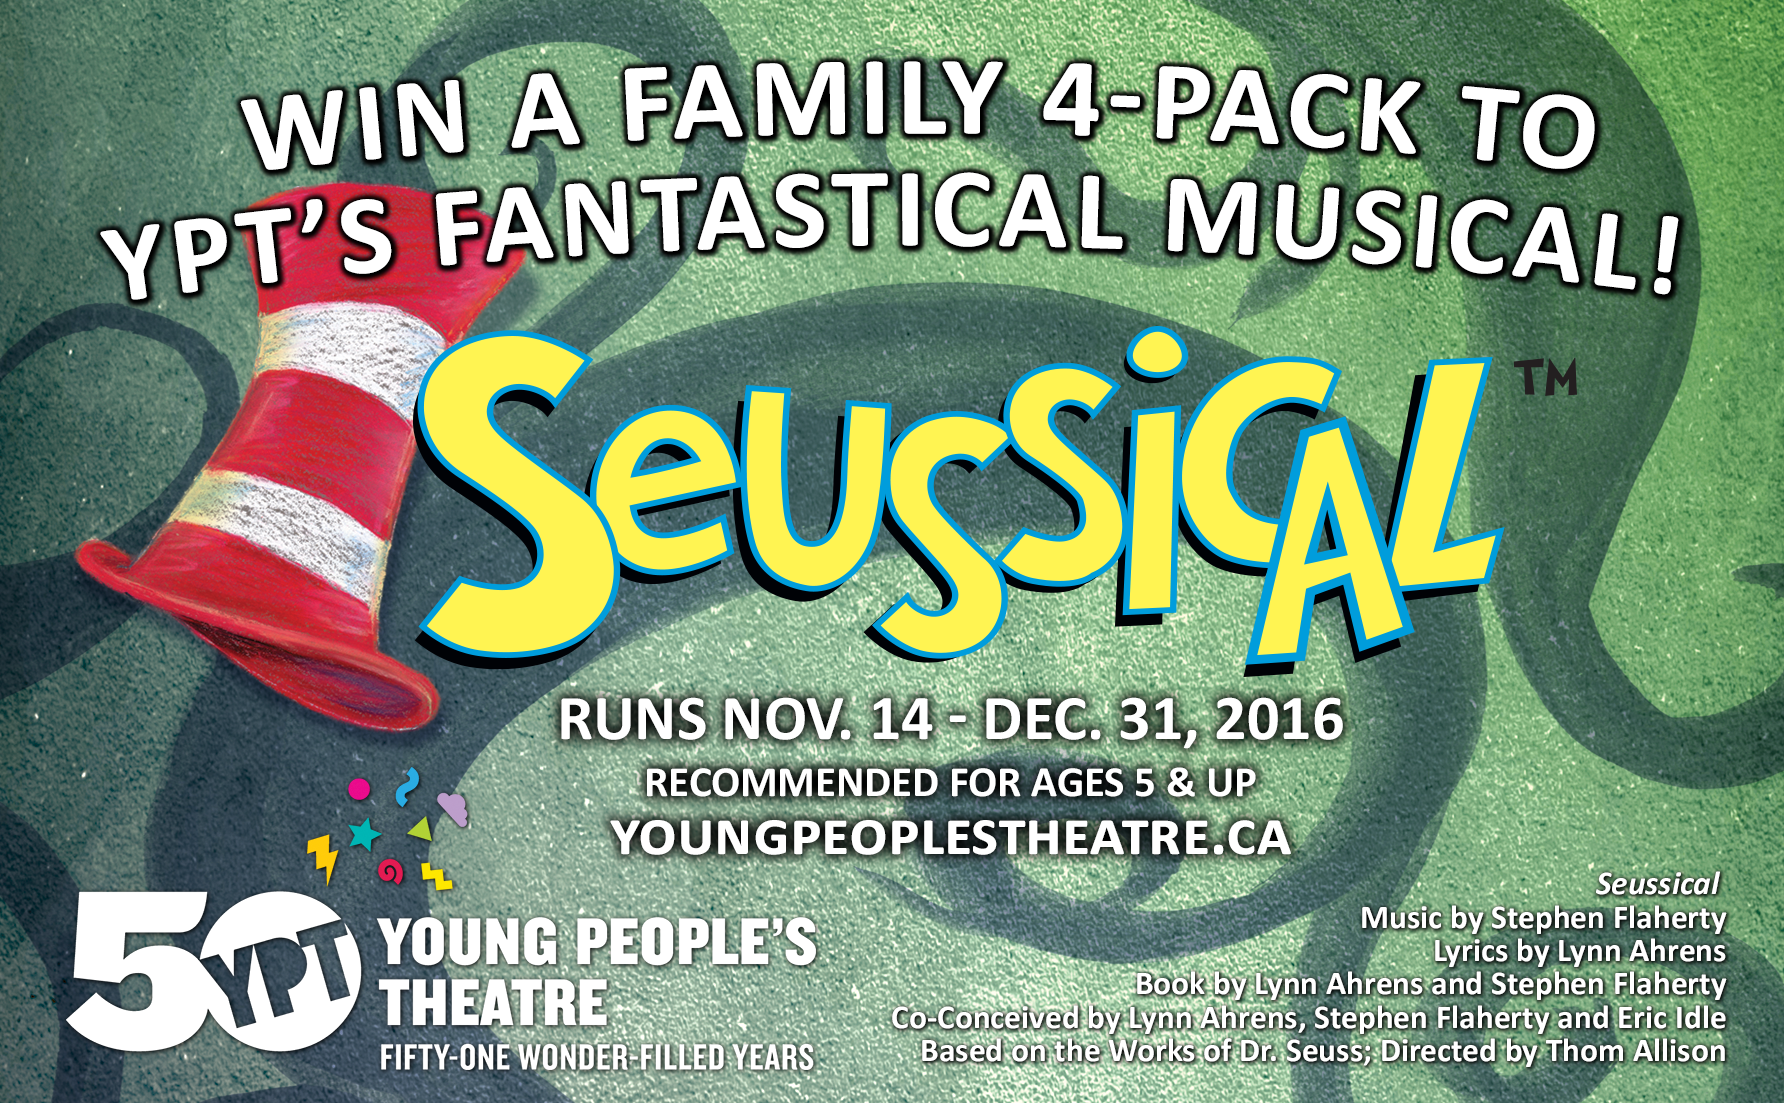 seussical_mom-rant-contest